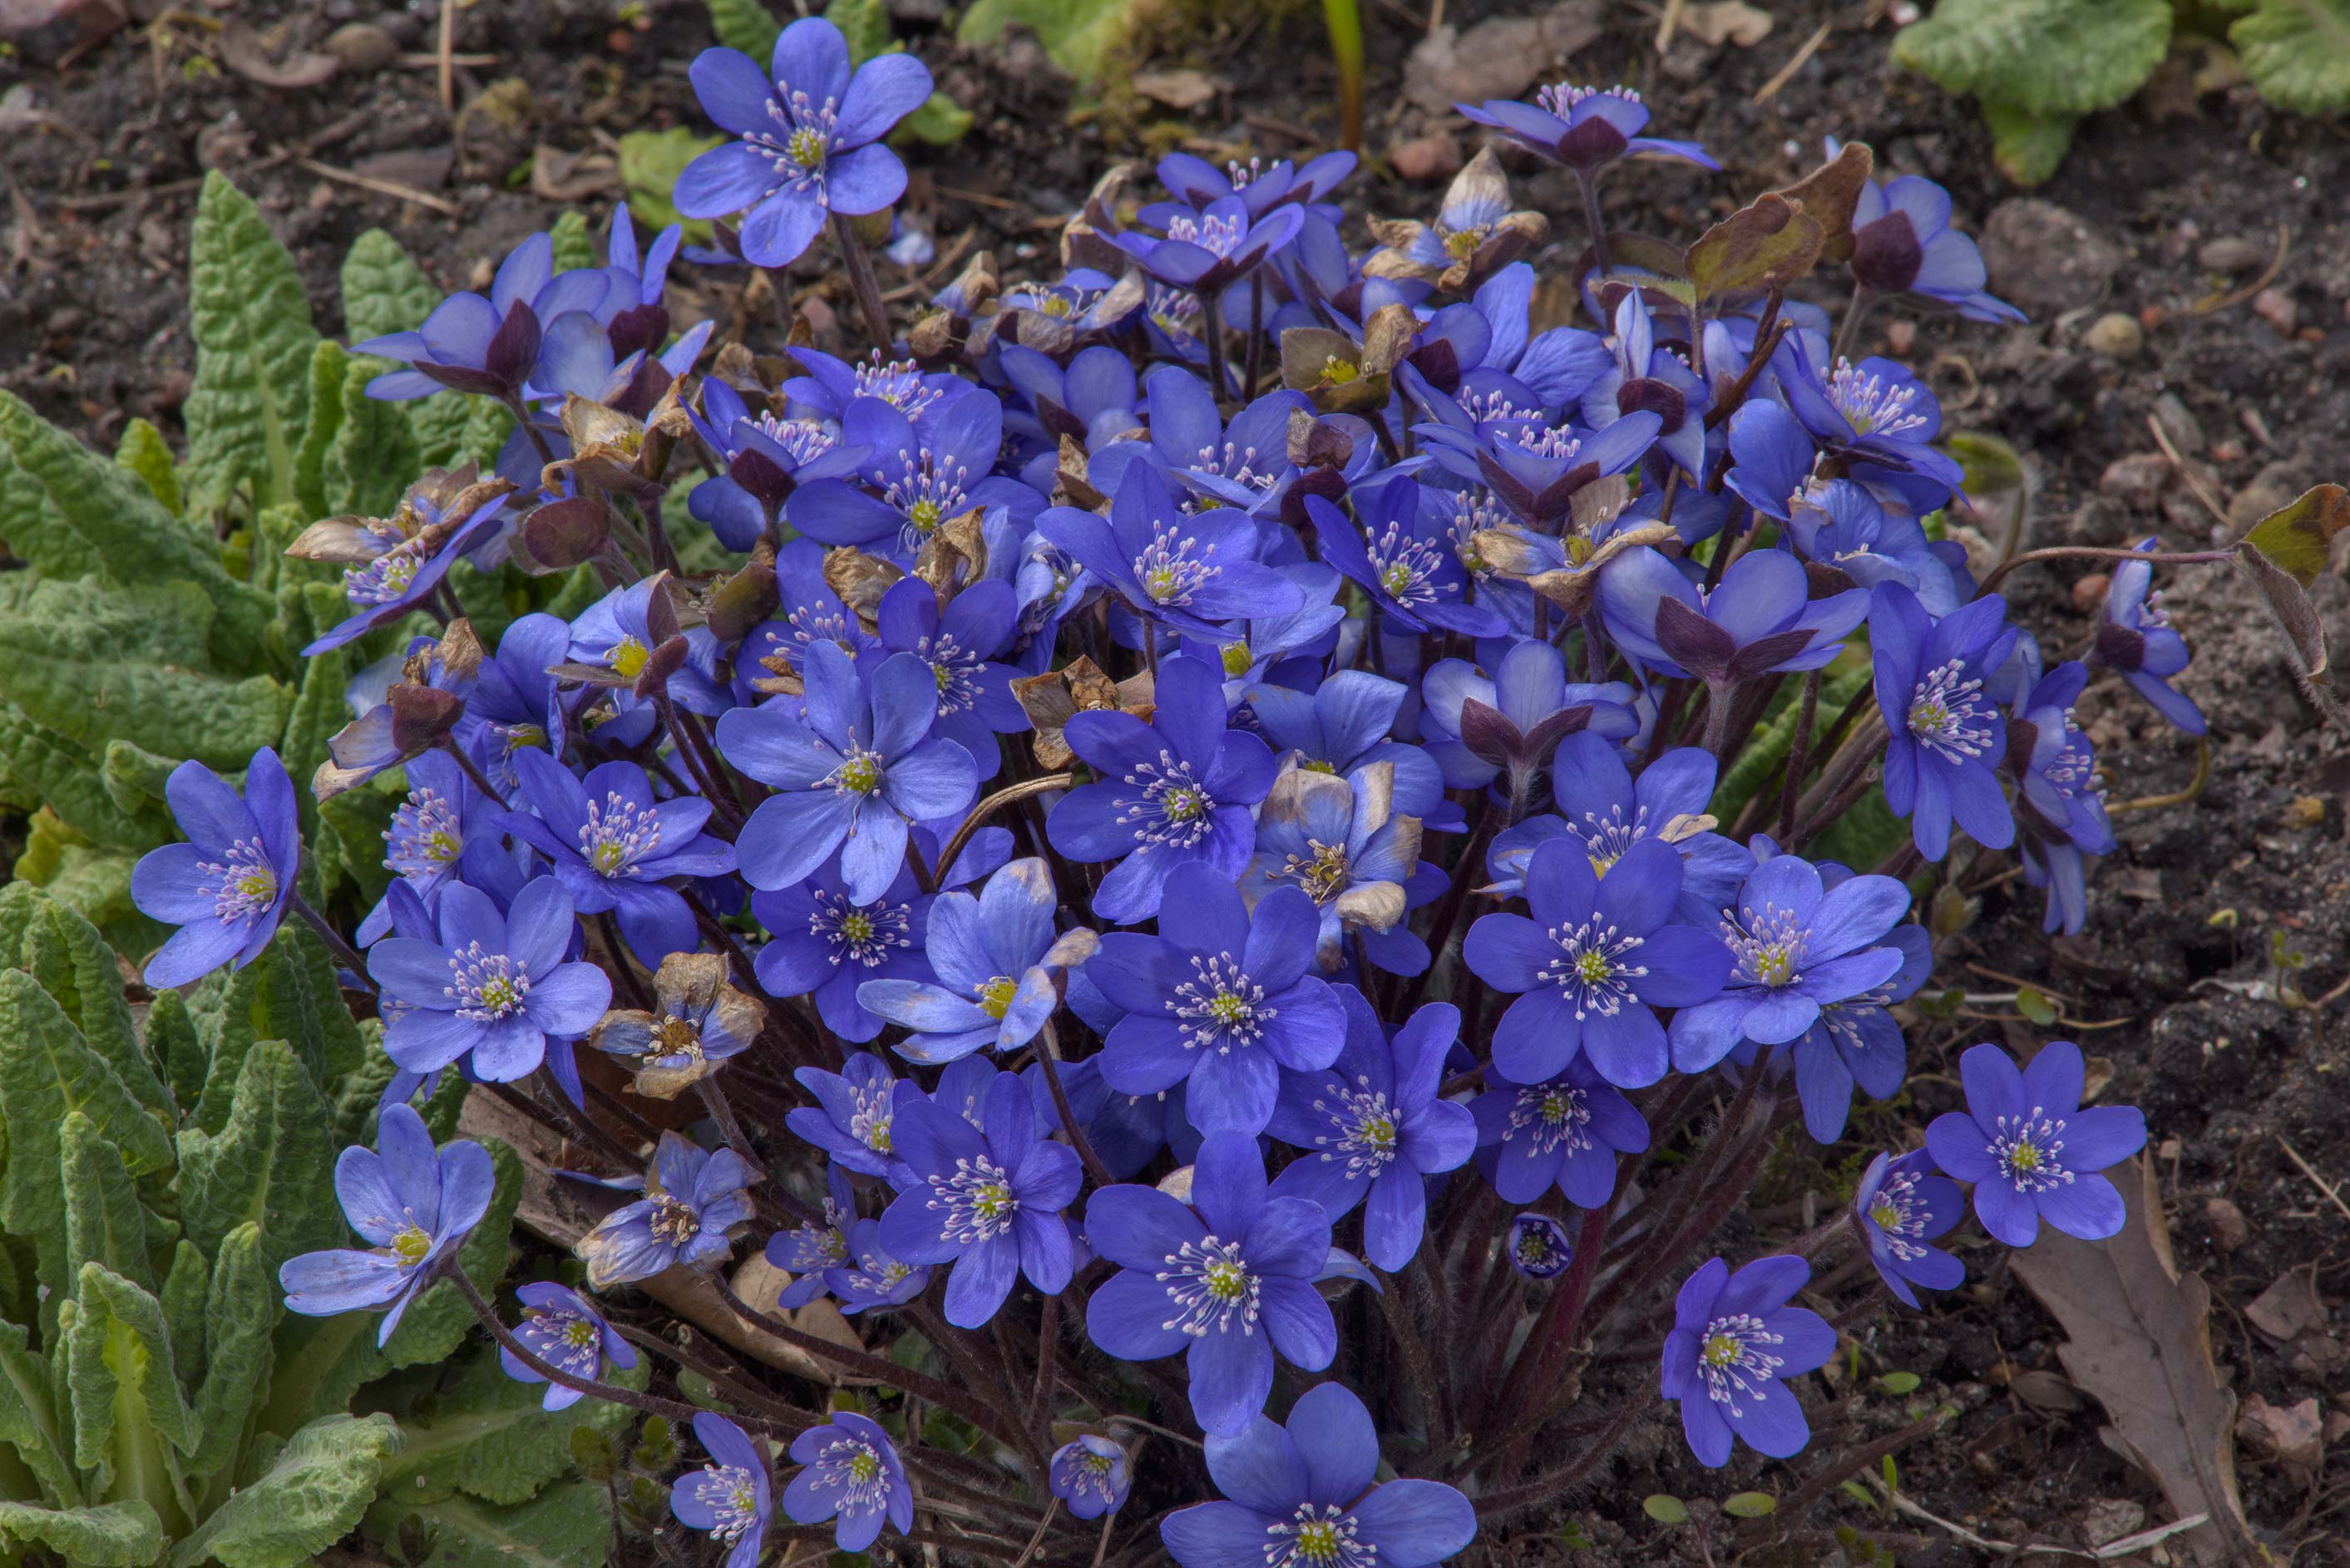 Blue flowers of Liverleaf (Hepatica nobilis) in...Institute. St.Petersburg, Russia